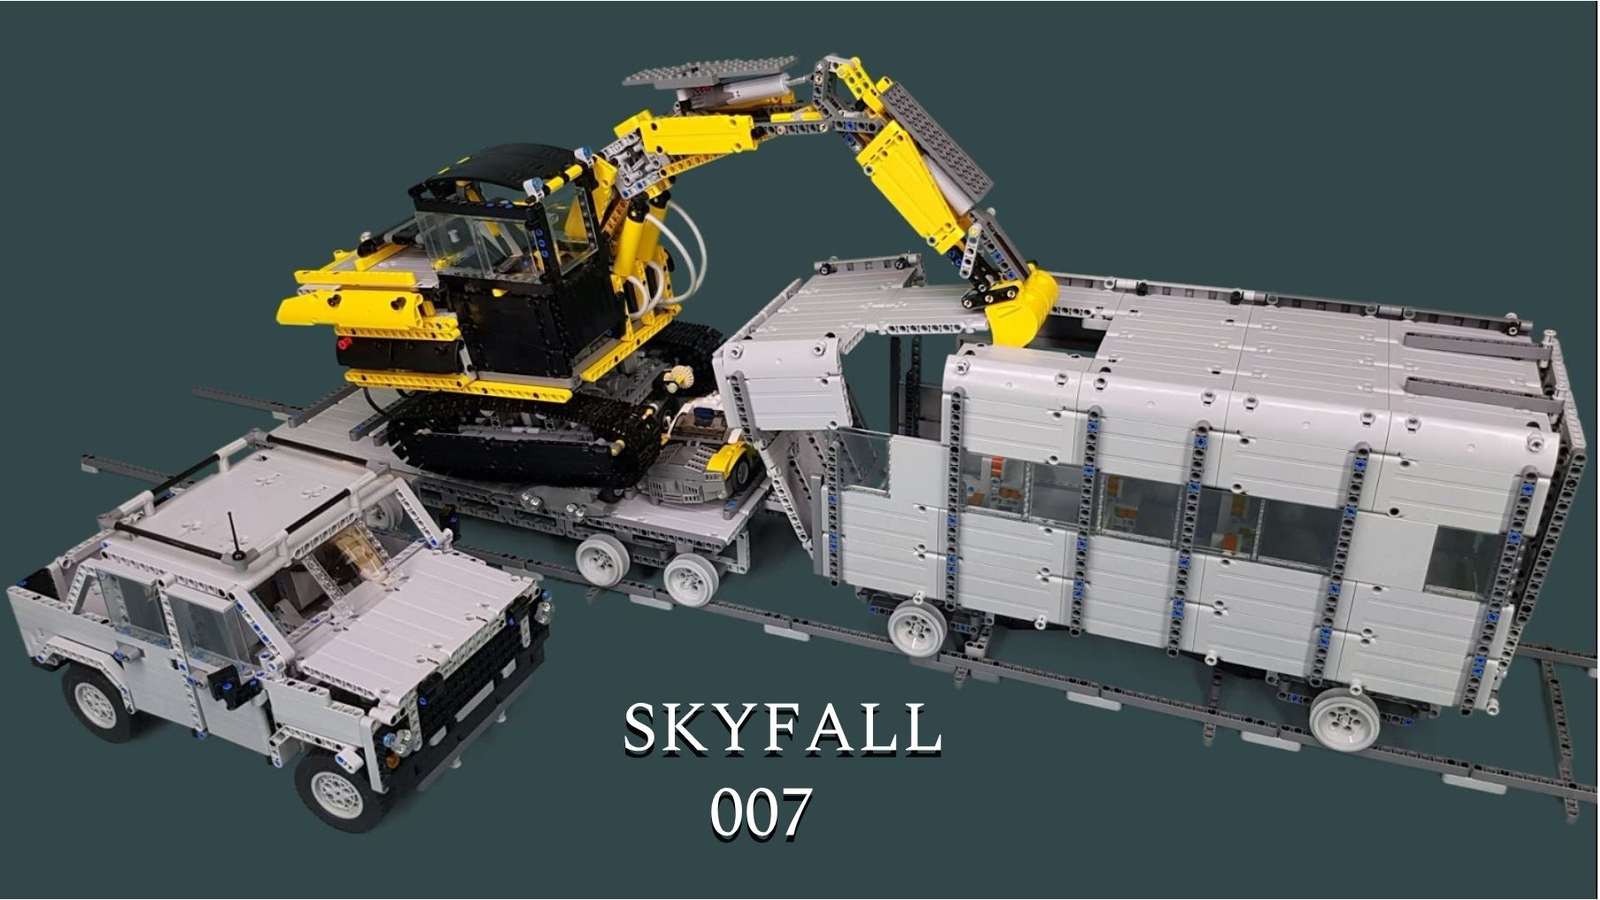 LEGO IDEAS - Build something spectacular from the world of 007